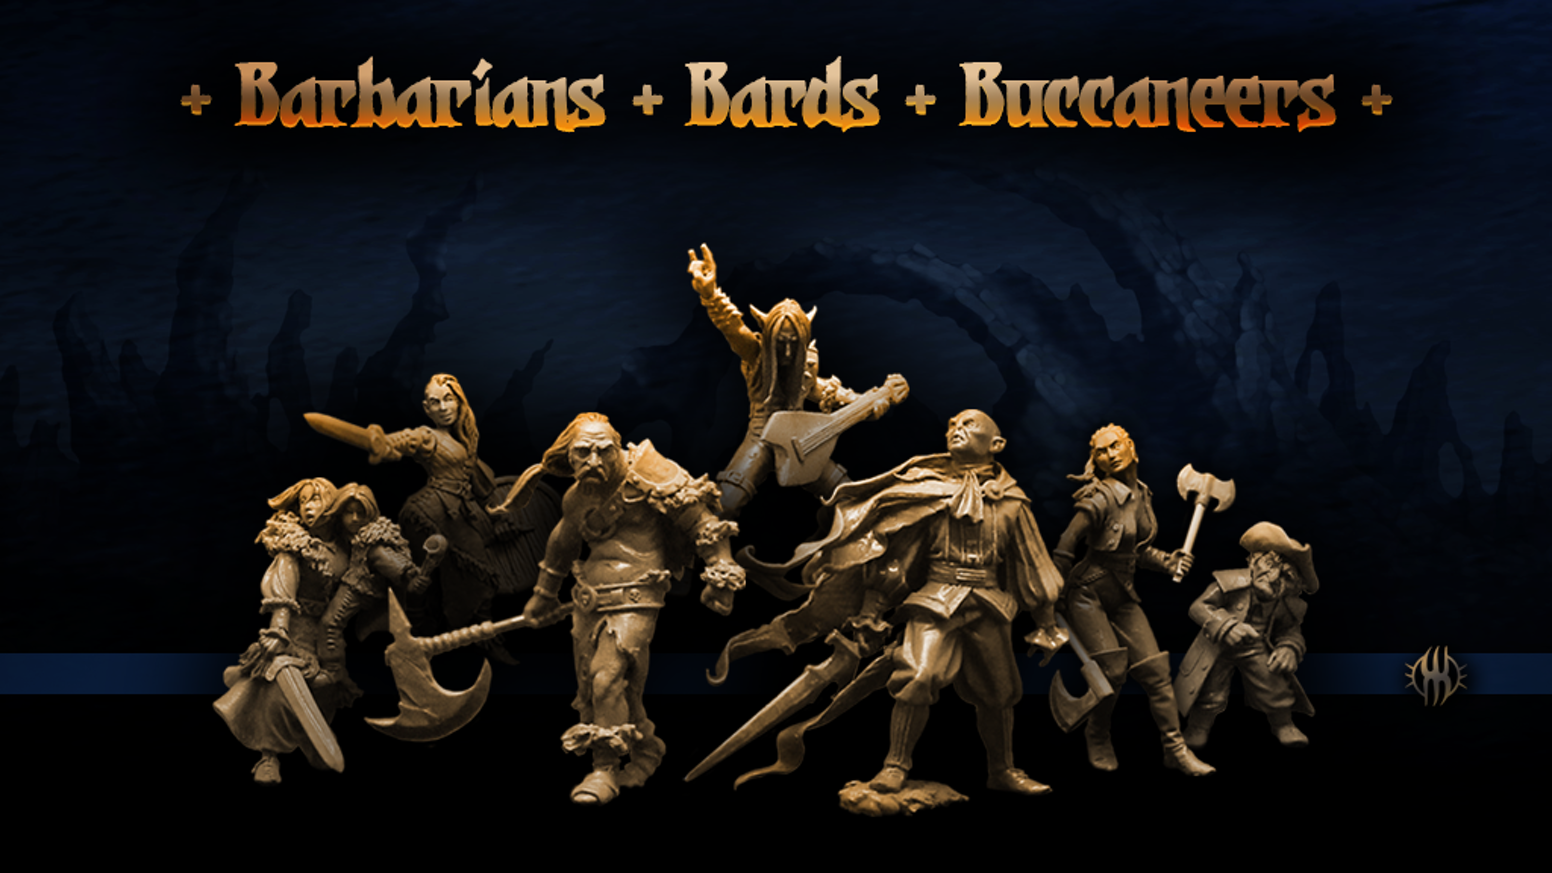 Heroic 32mm Resin Tabletop Miniatures for Collectors and Gamers.